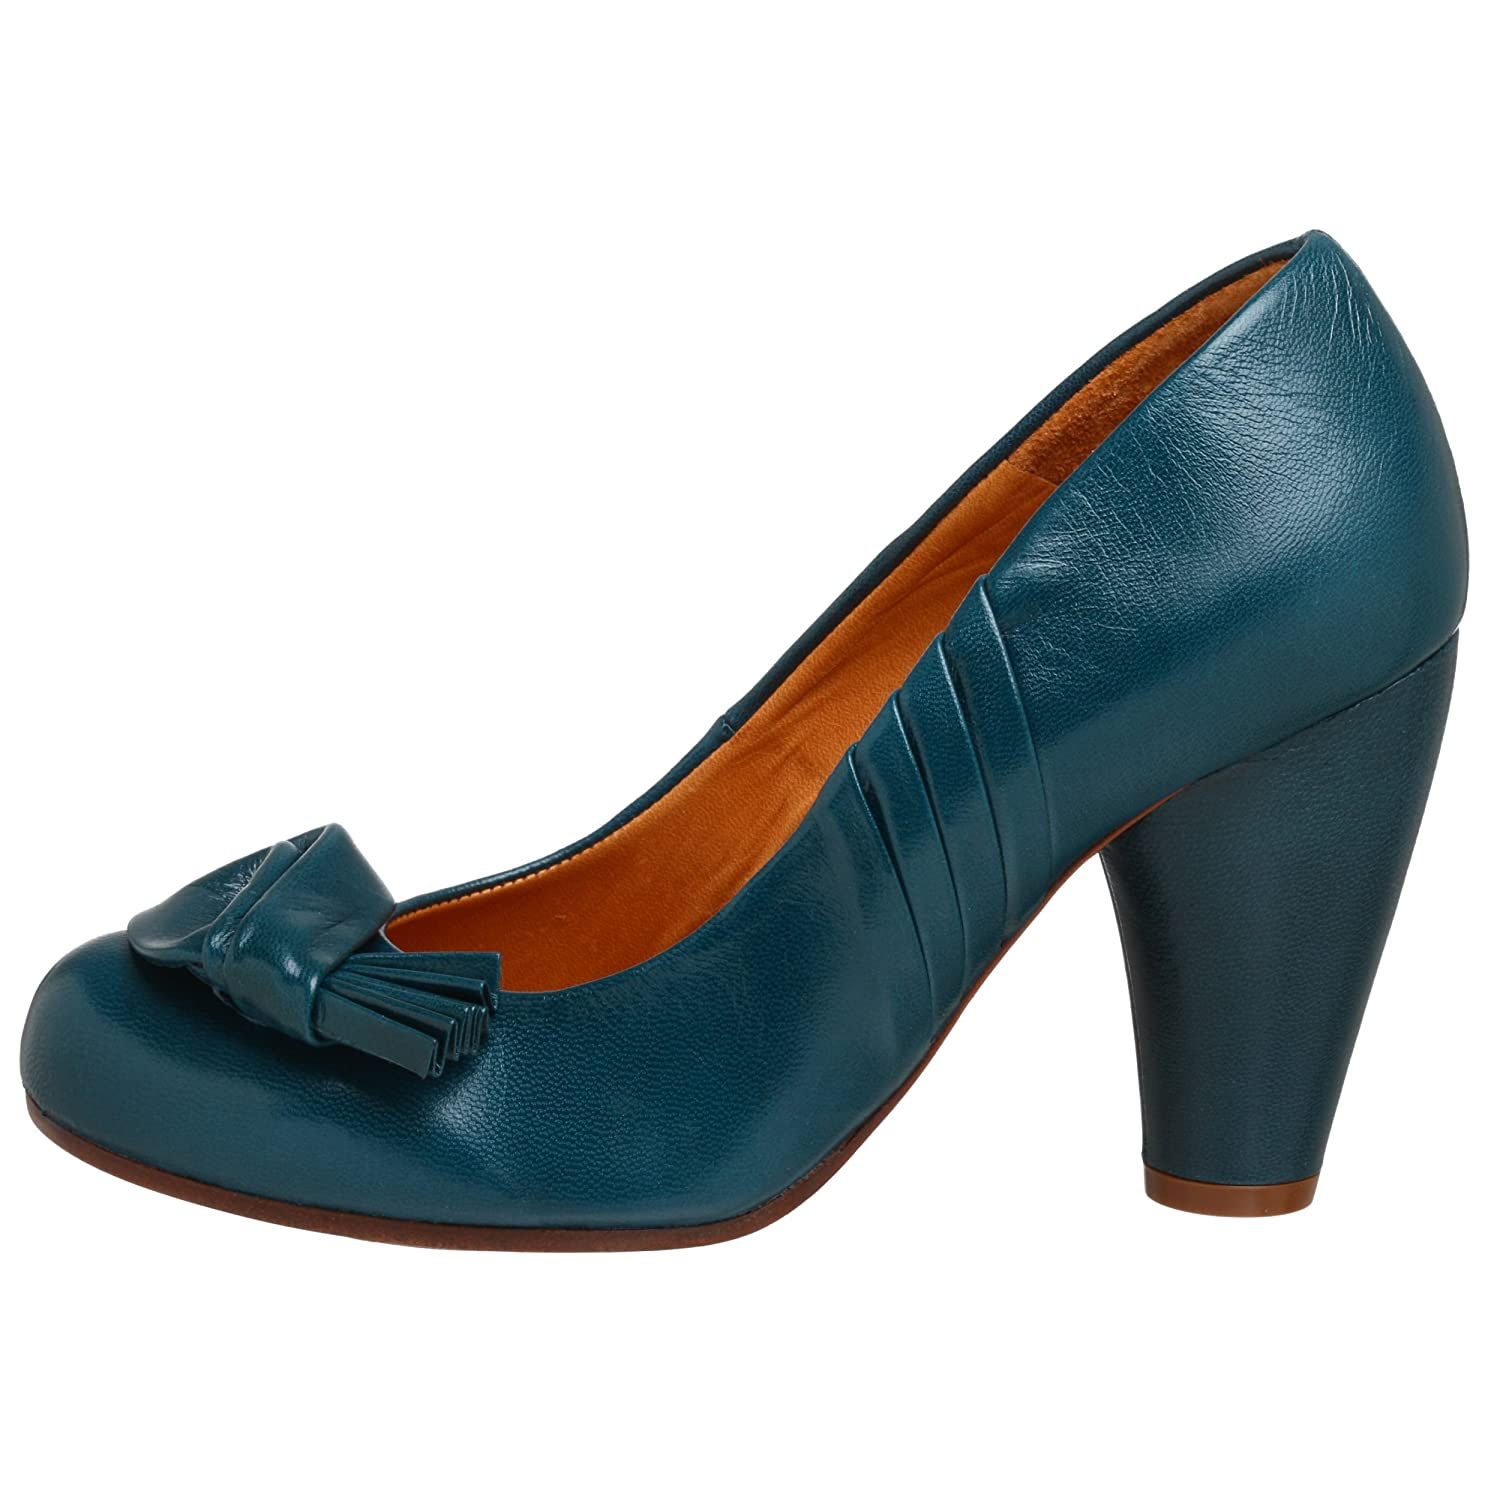 Chie Mihara Women's Serena Pump - Free Overnight Shipping & Return Shipping: Endless.com